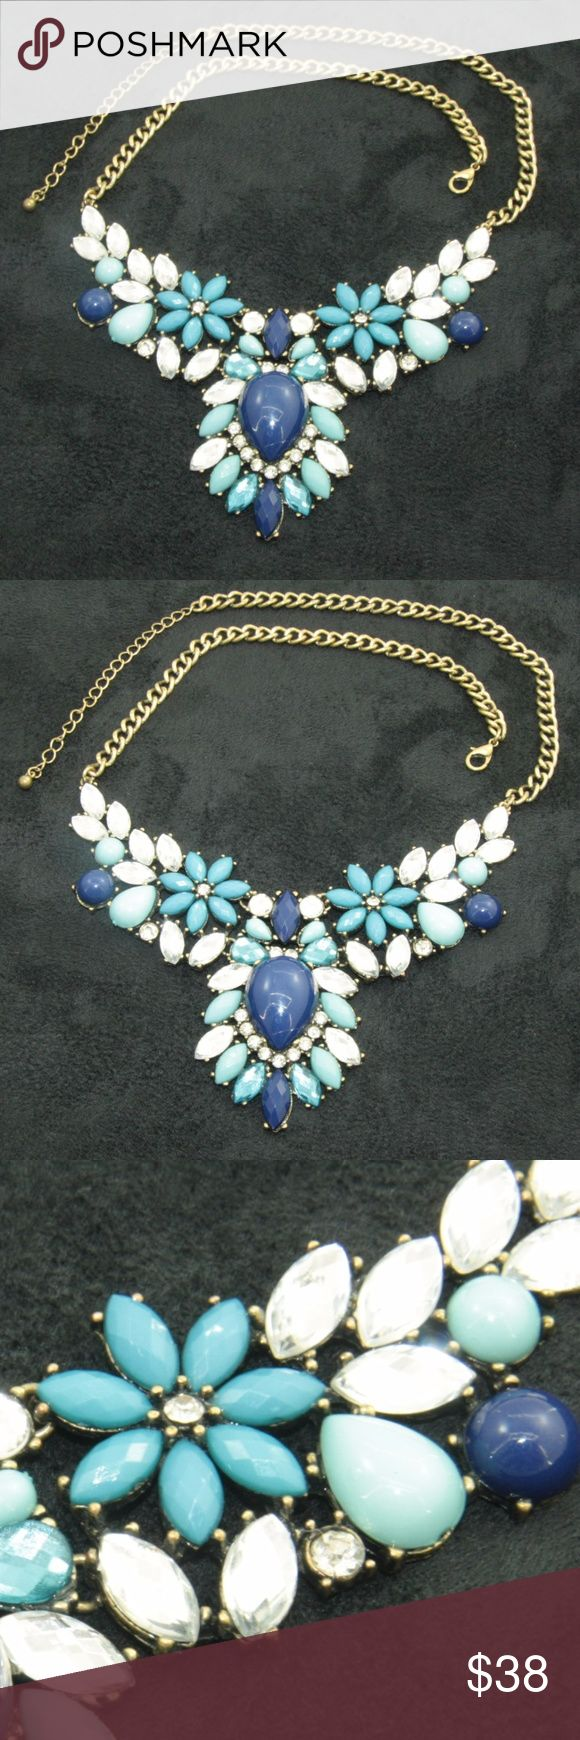 Blue Statement Statement Necklace Gorgeous colors: Marina Blue, Navy Peony, and Brilliant Clear Marquis Crystal Rhinestones and Clear Chatons.  Gold tone chain.  18 inches in length, adjustable to 21 inches.  Used item: any wear shown in pictures. Excellent condition. All stones intact.  Bundle Up!  Offers always welcome : ) Jewelry Necklaces